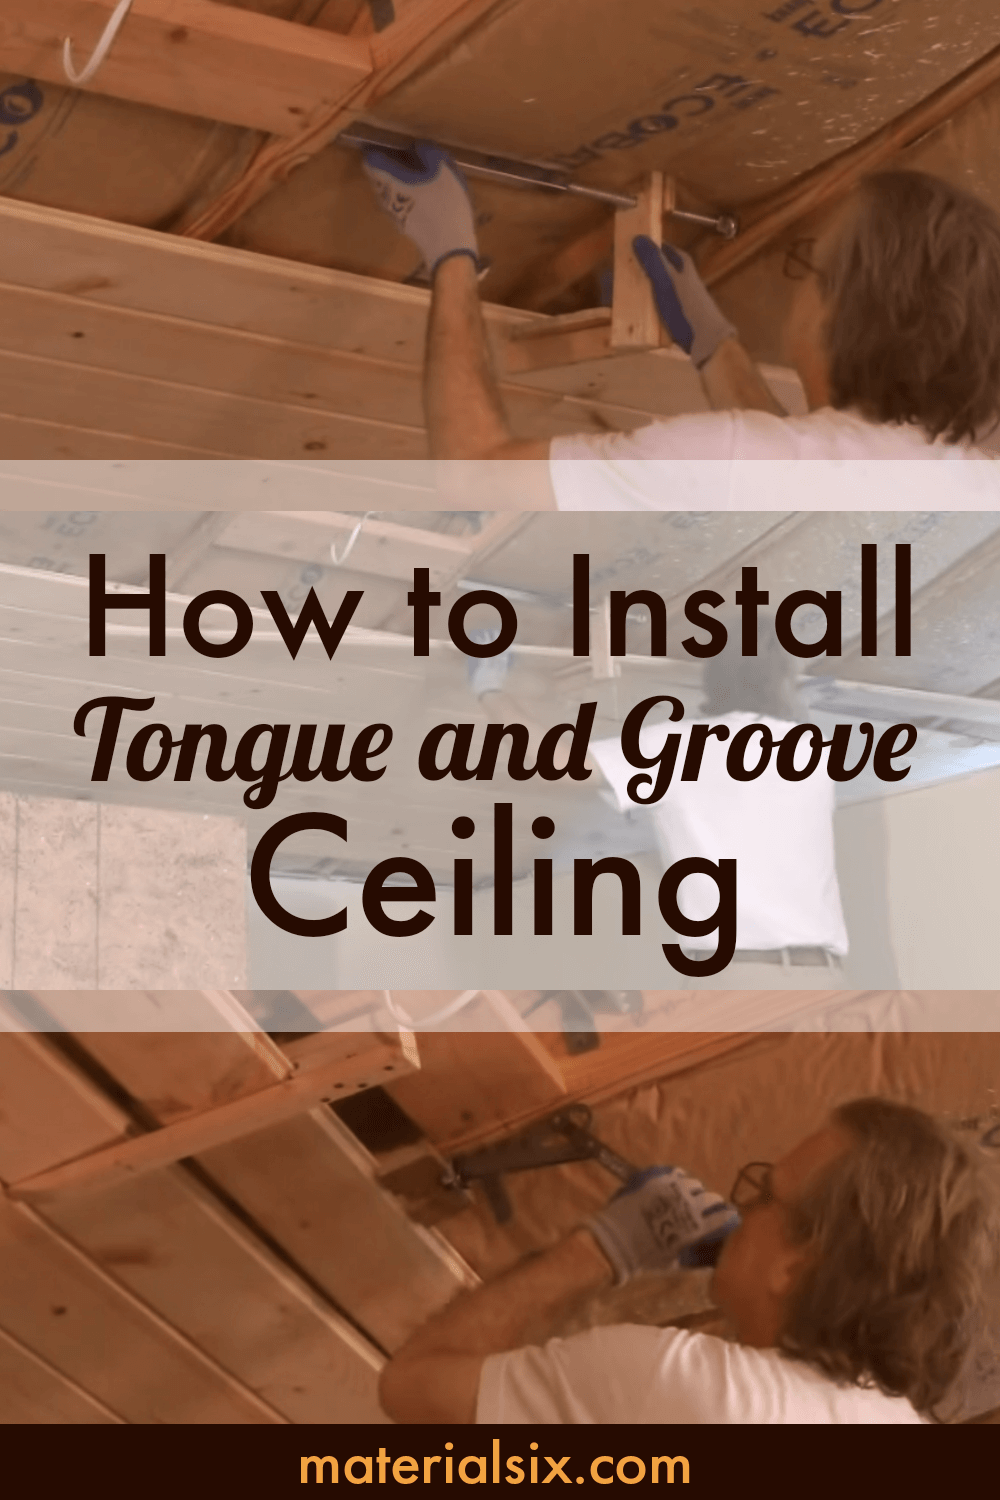 How To Install Tongue And Groove Ceiling Materialsix Com Tongue And Groove Ceiling Tongue And Groove Cedar Tongue And Groove